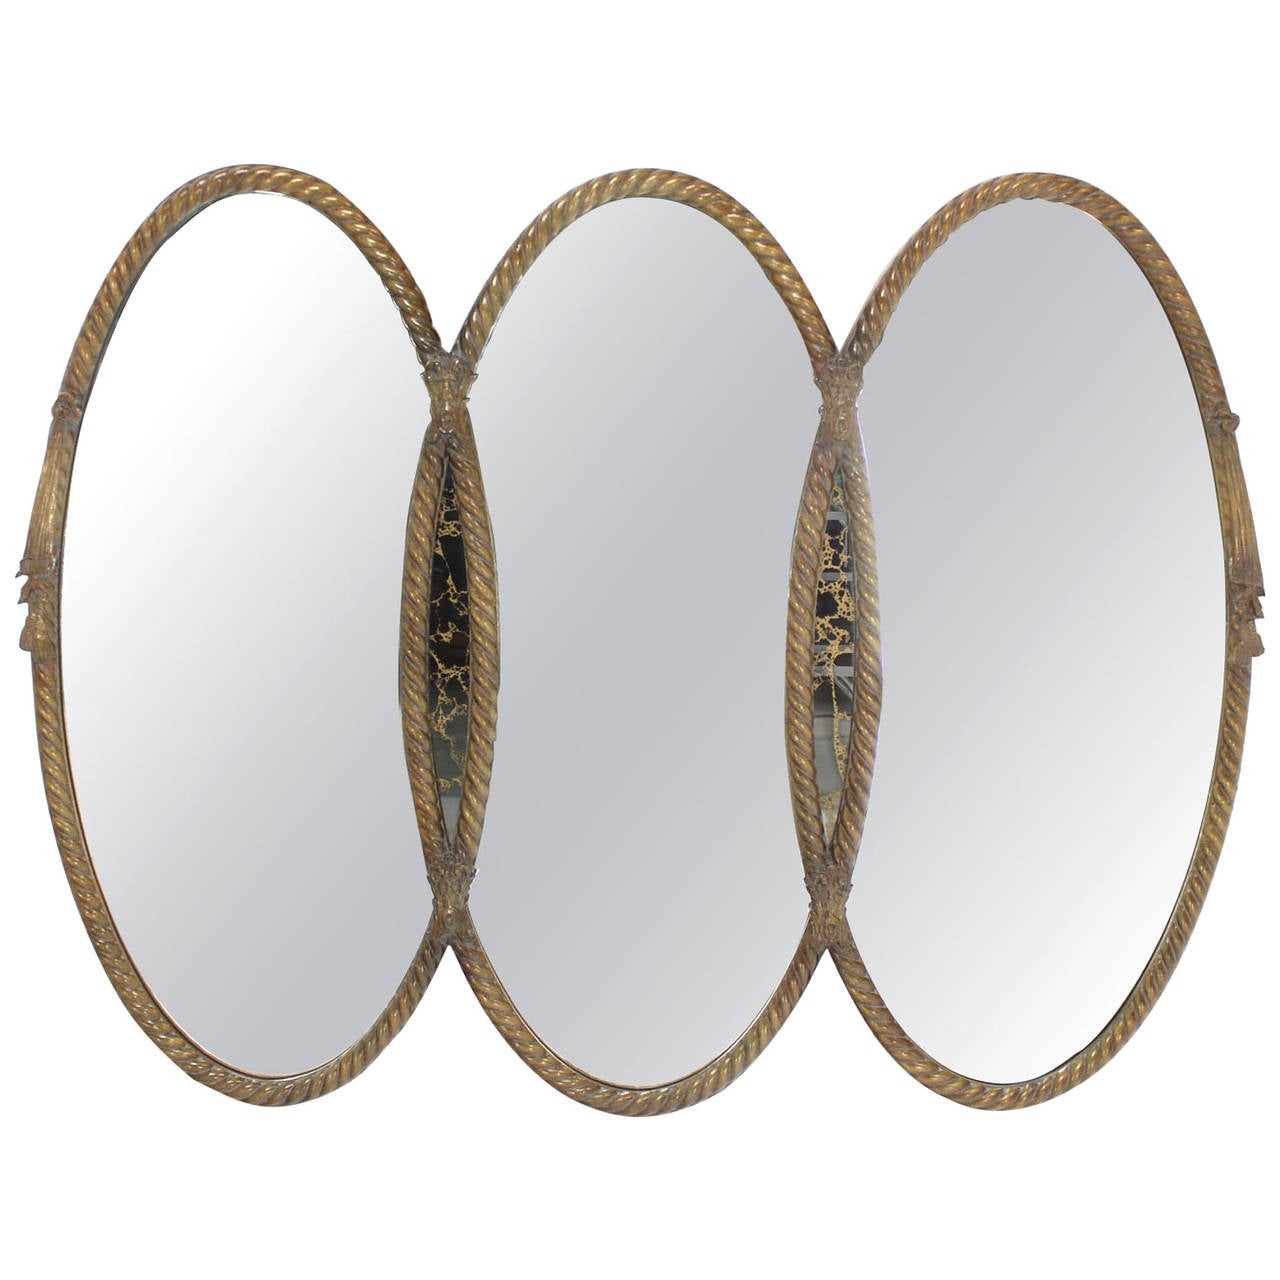 Mid Century Modern Triple Oval Gold Mirror With Rope Edge